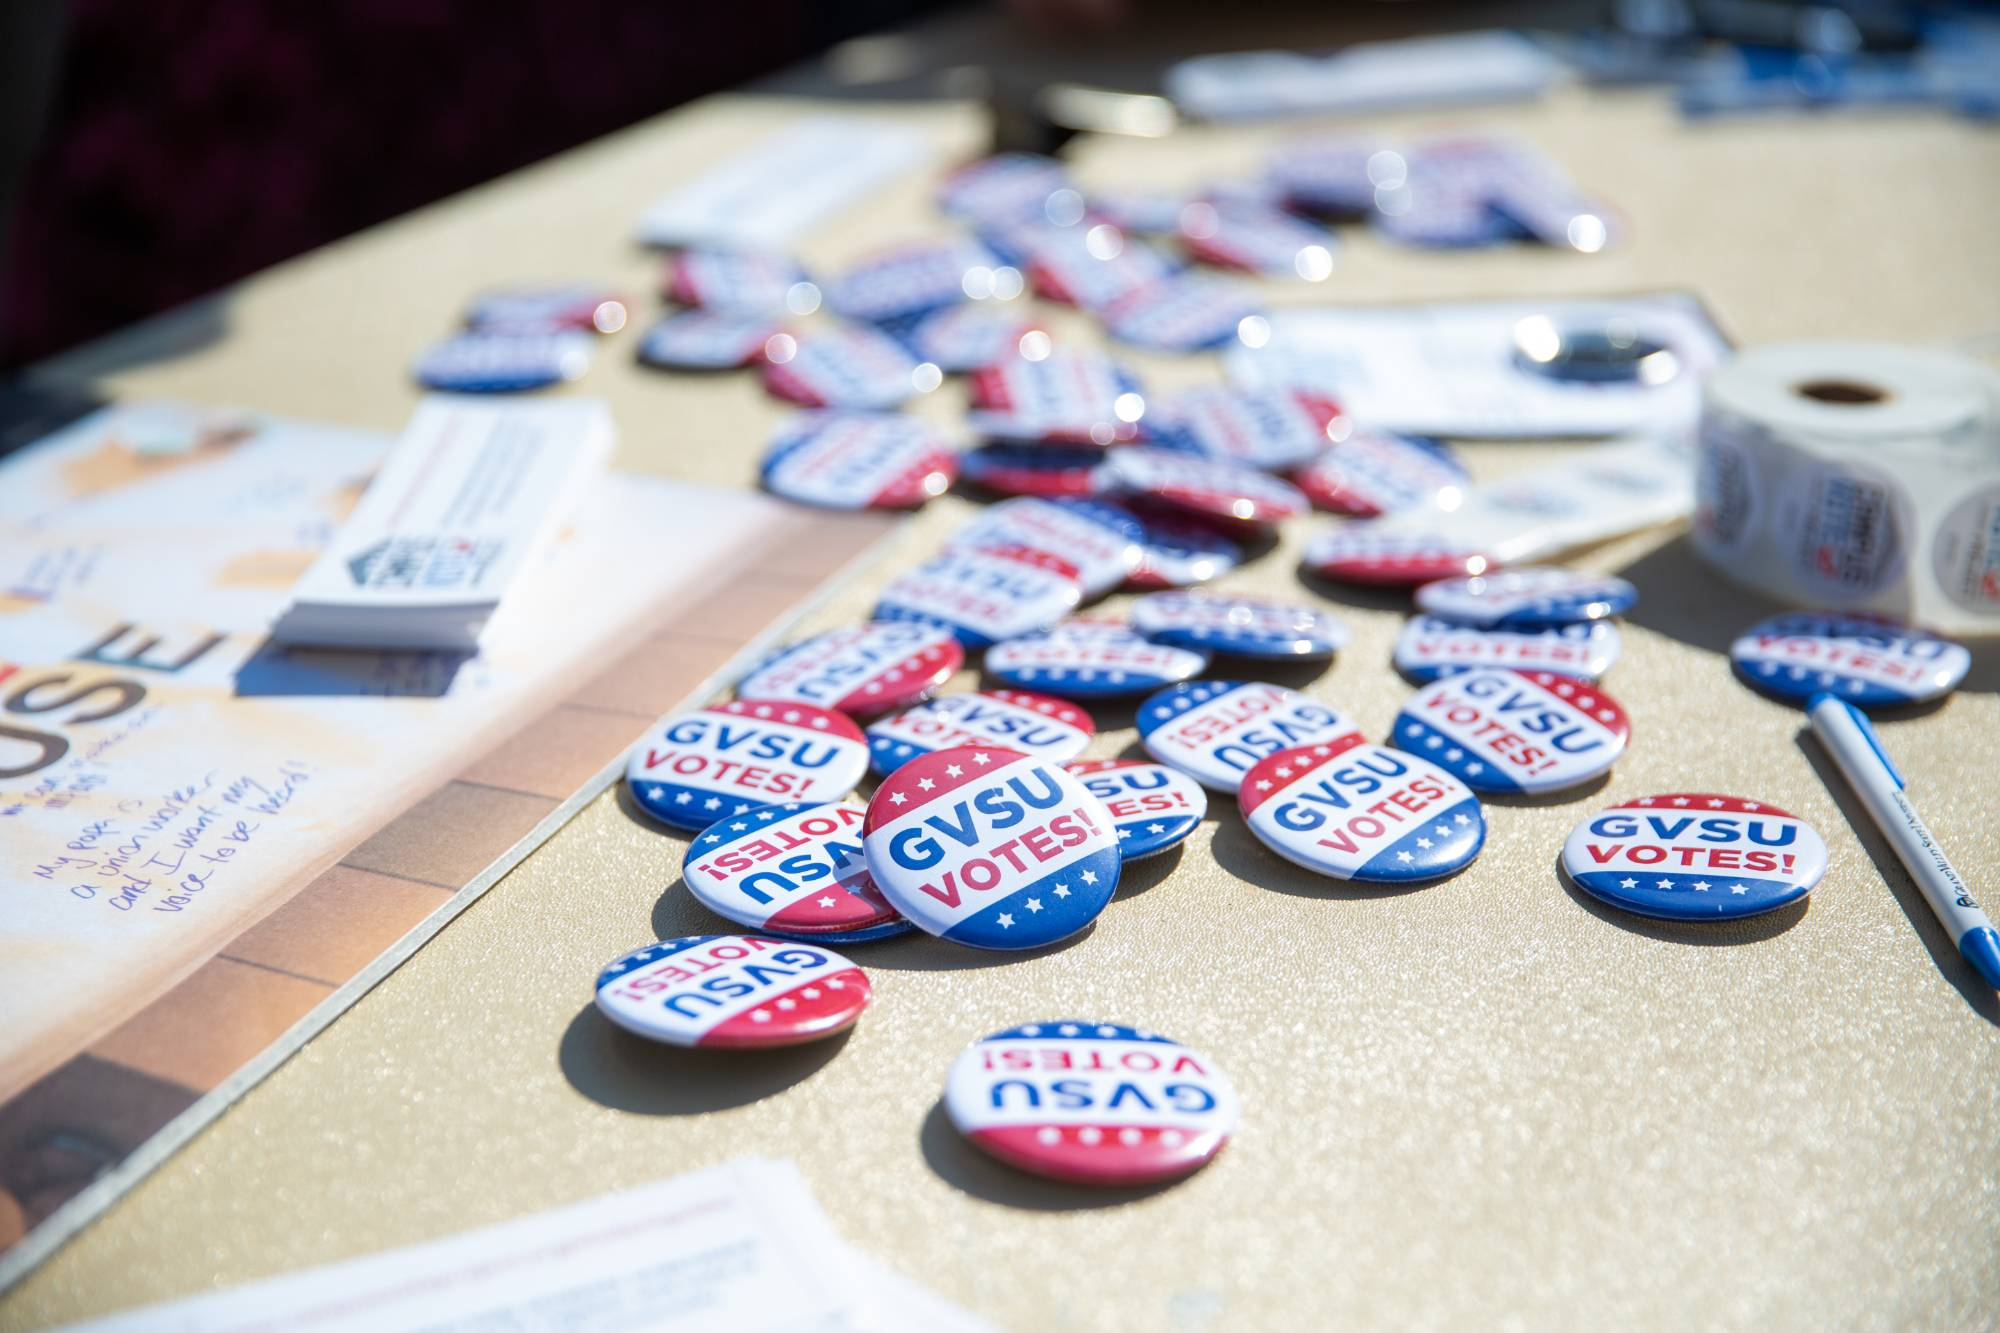 GVSU Votes buttons lying on table